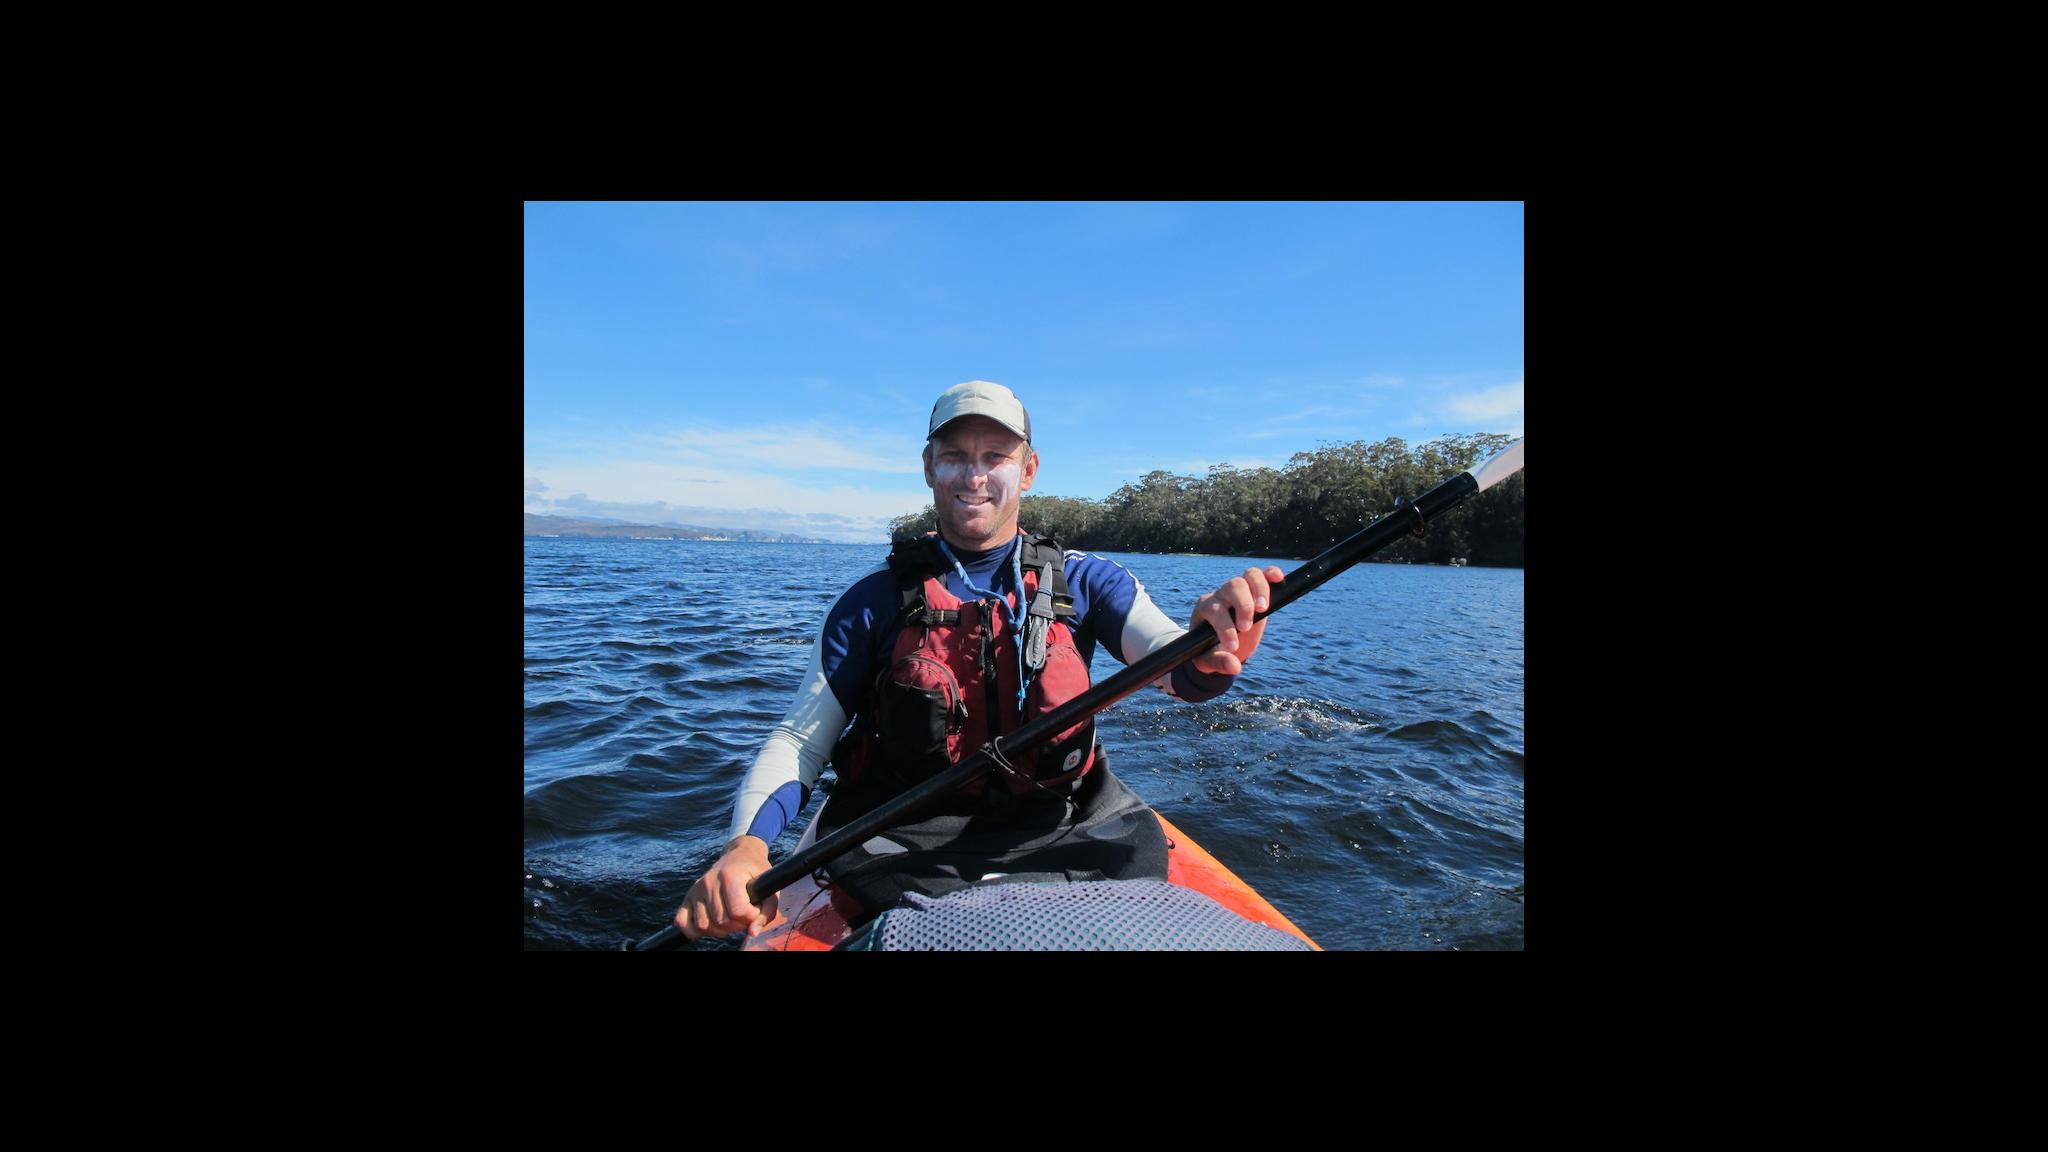 Roaring 40s Kayaking - Reg qualified Paddle Australia sea kayak assessor and instructor Hobart Tasmania